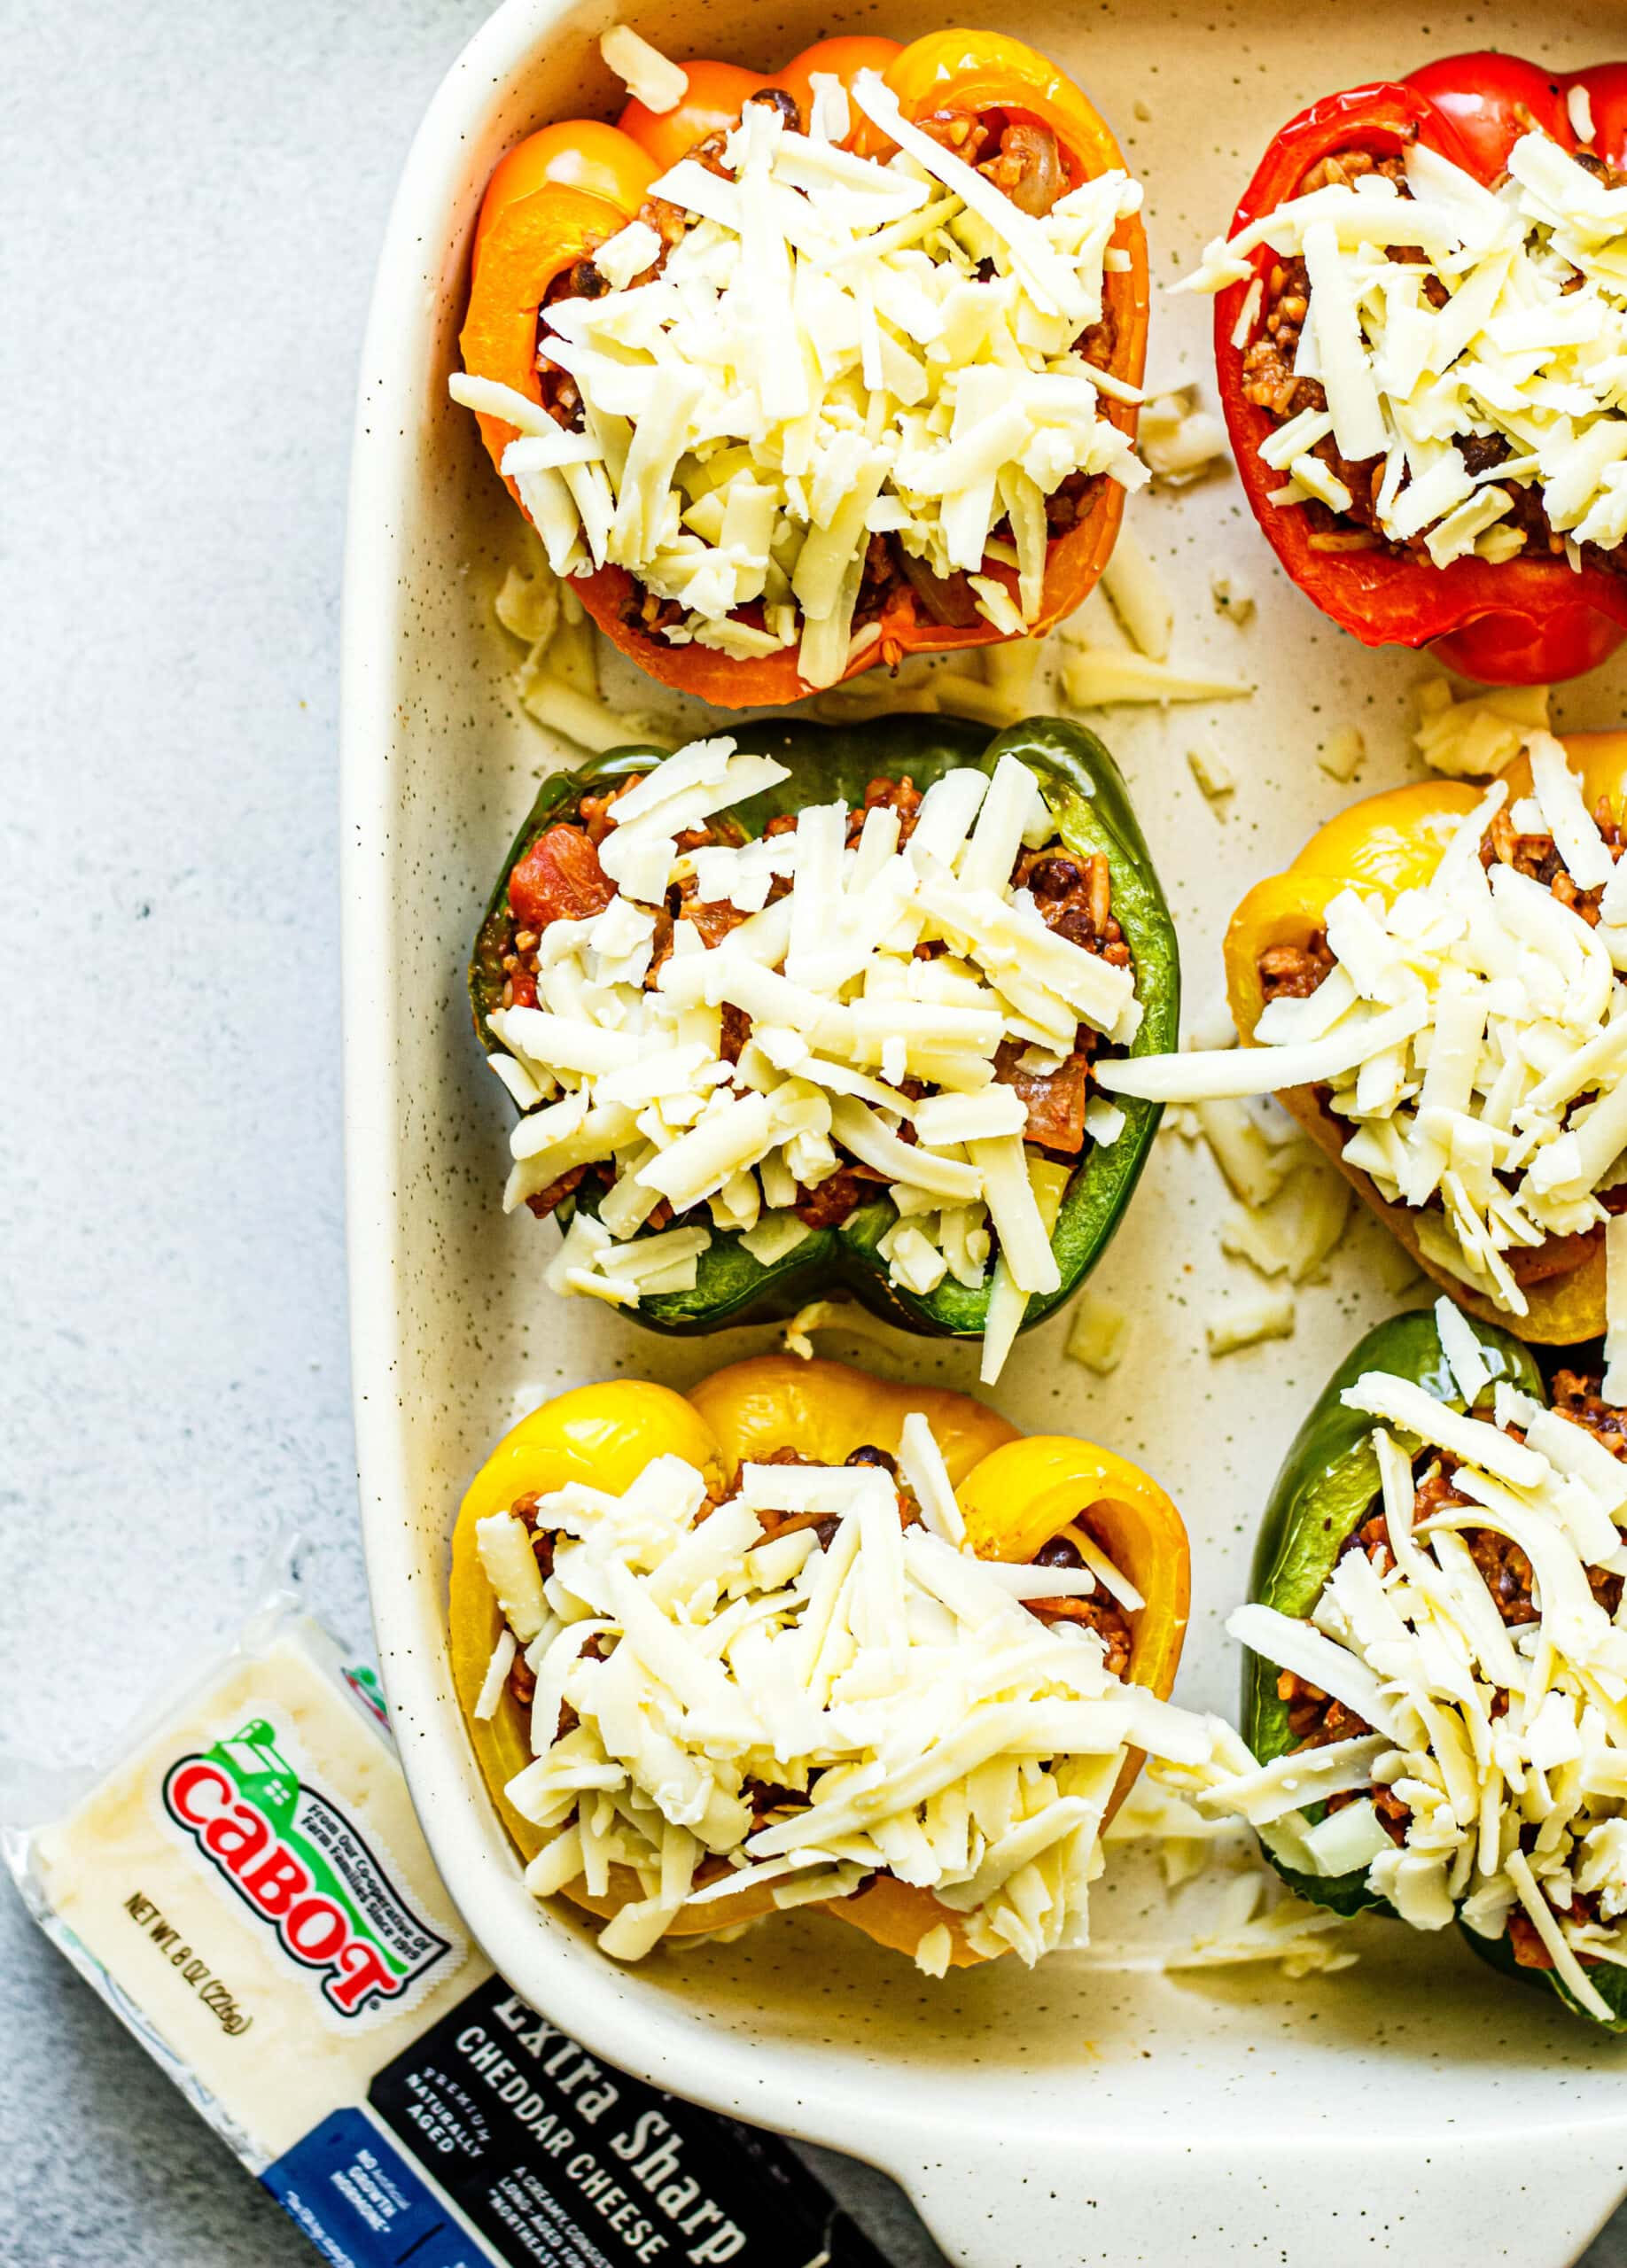 stuffed peppers topped with shredded cheese